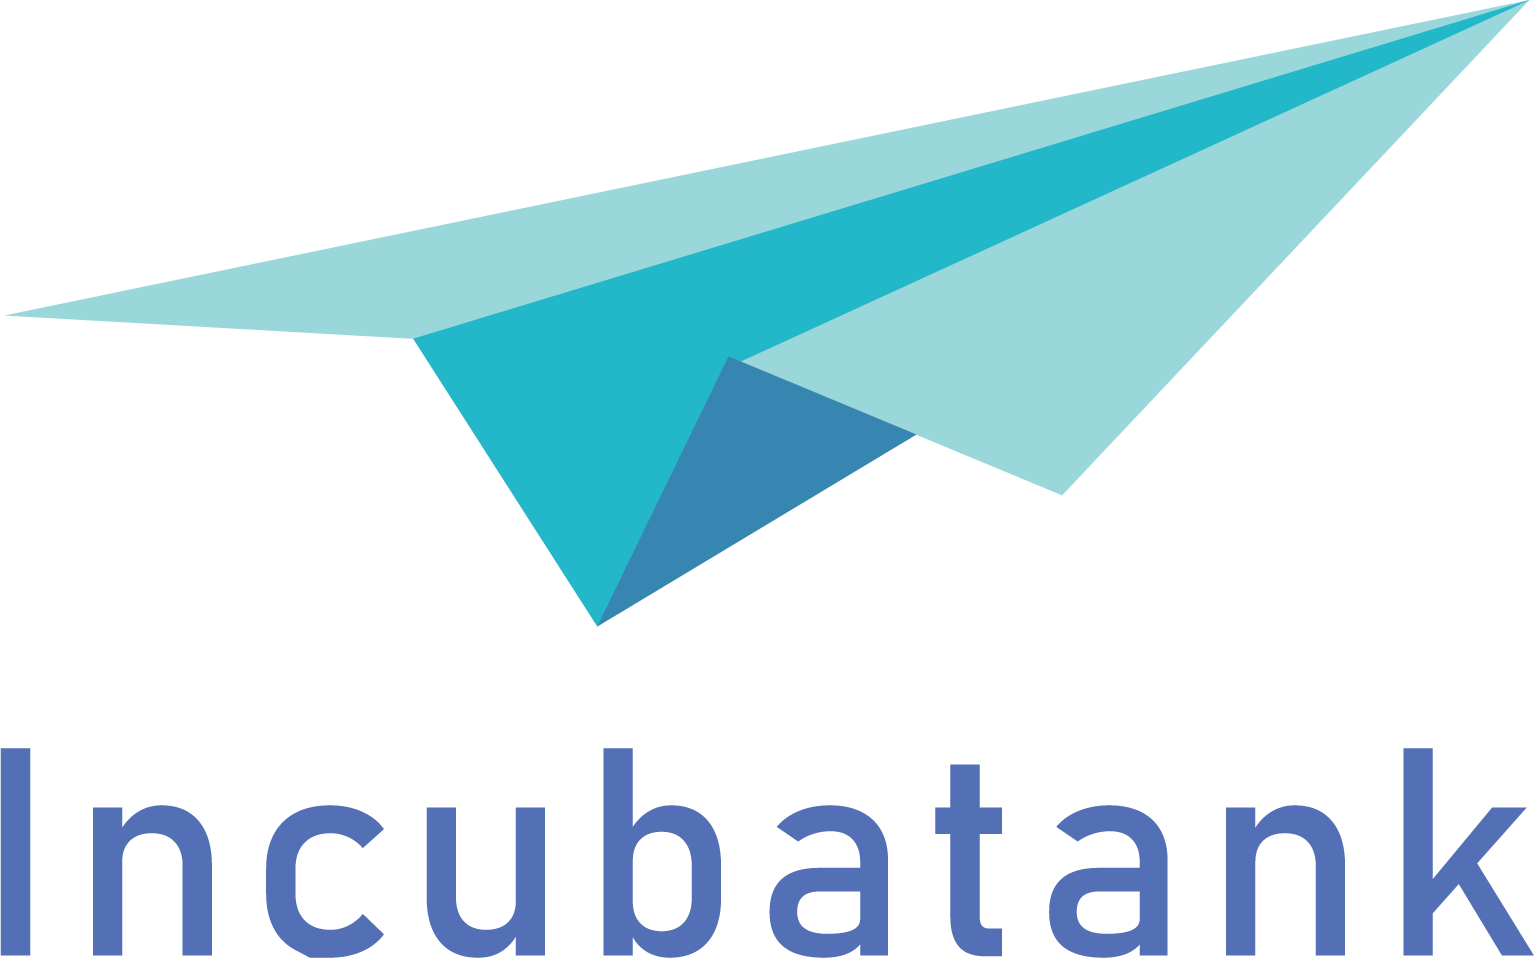 INCUBATANK - Blockchain Incubator for Start-up Companies